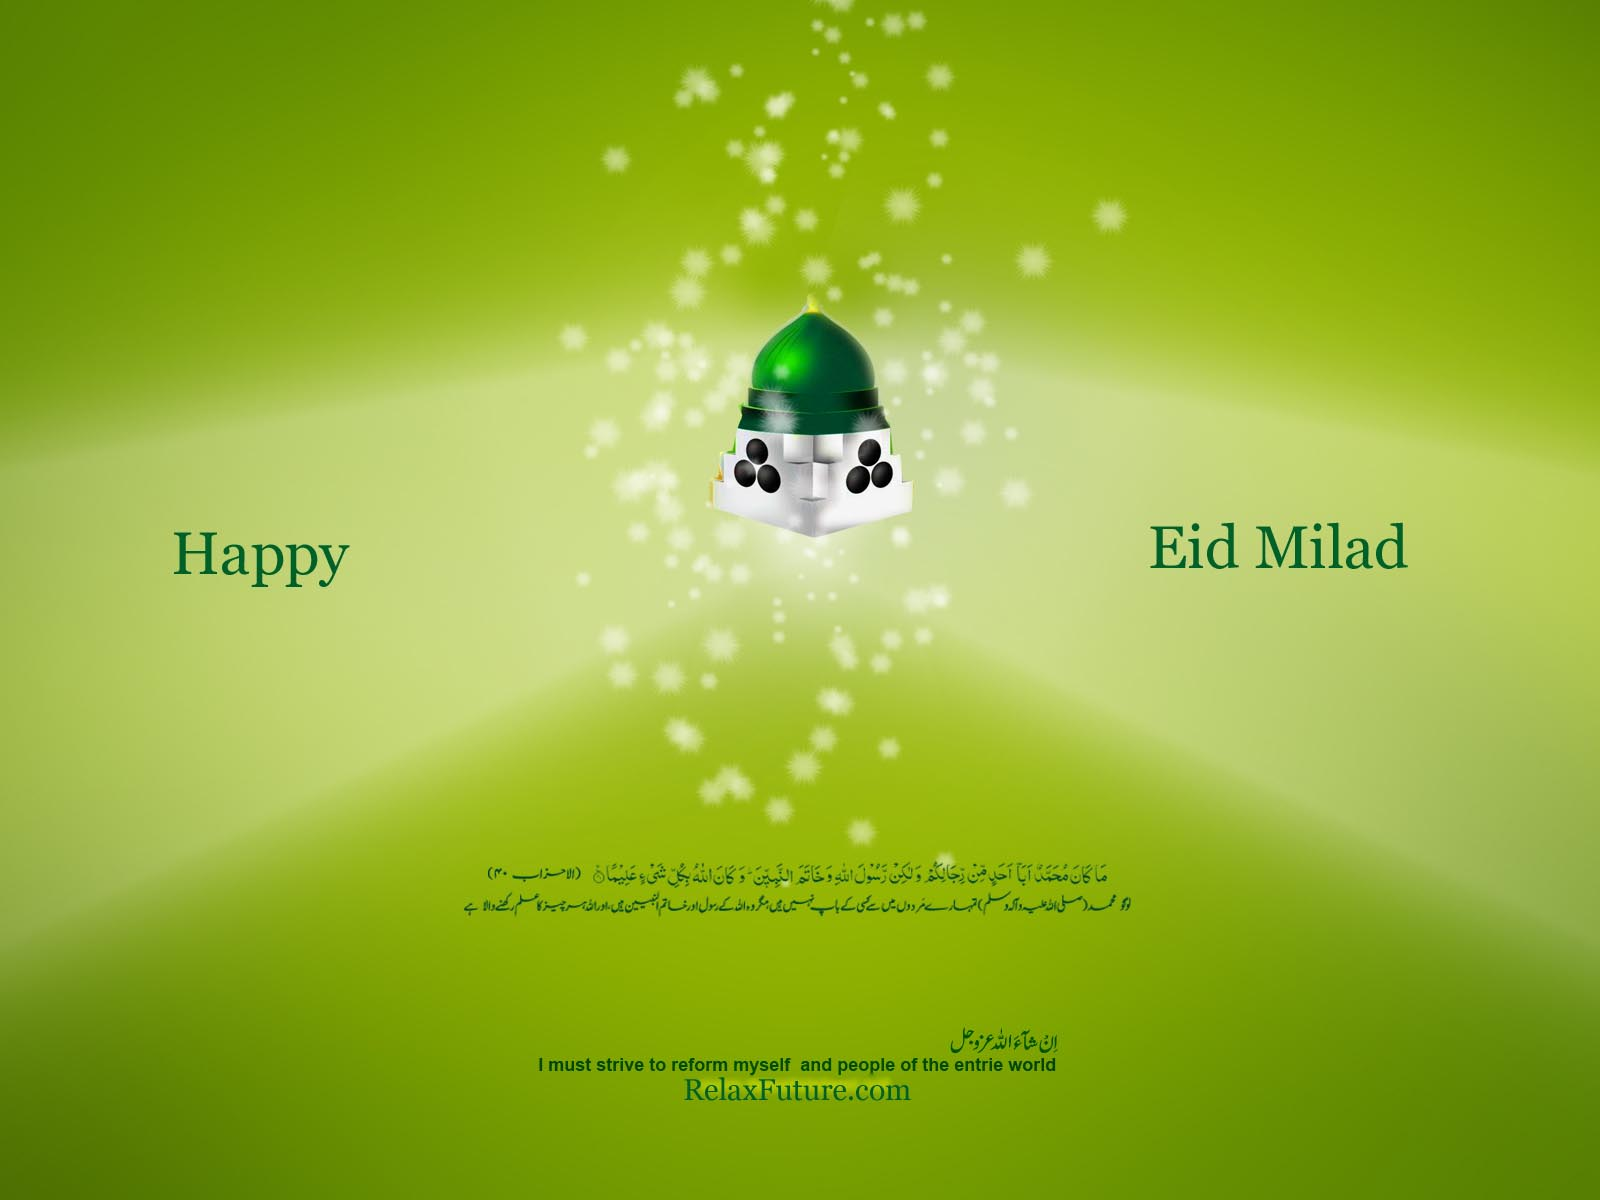 Happy Eid Milad Greeting Picture